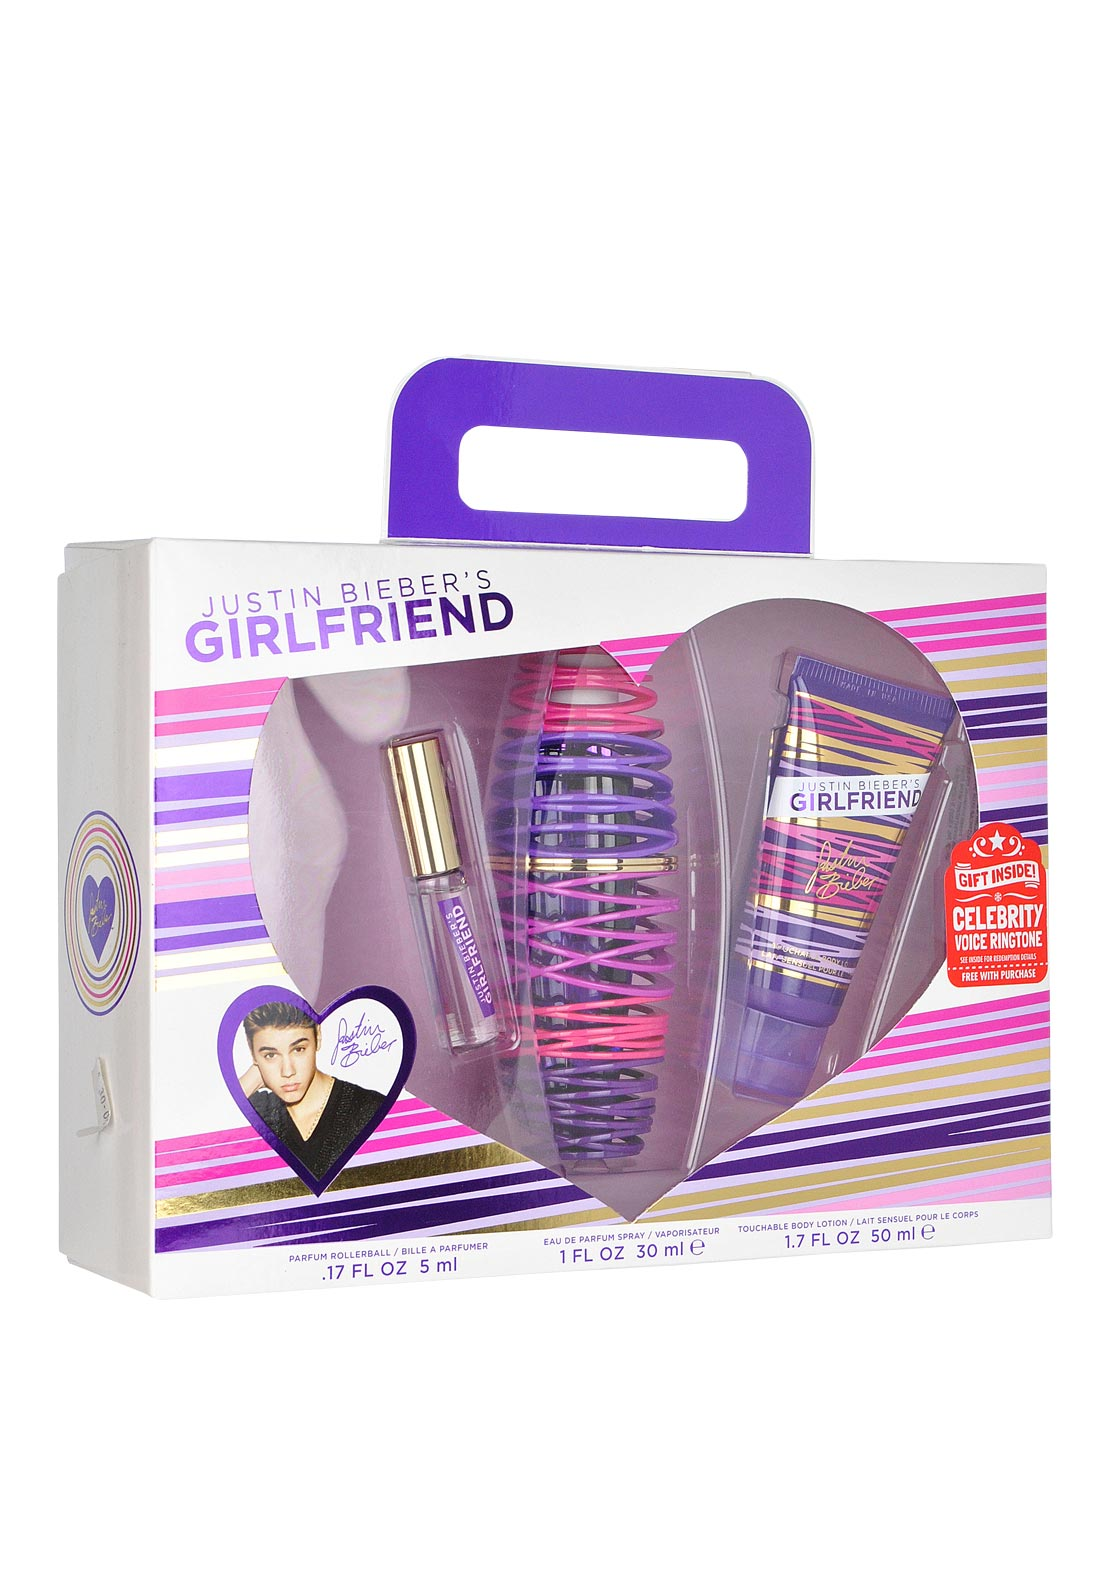 Justin Bieber Girlfriend Eau De Parfum Gift Set for Women, 30ml